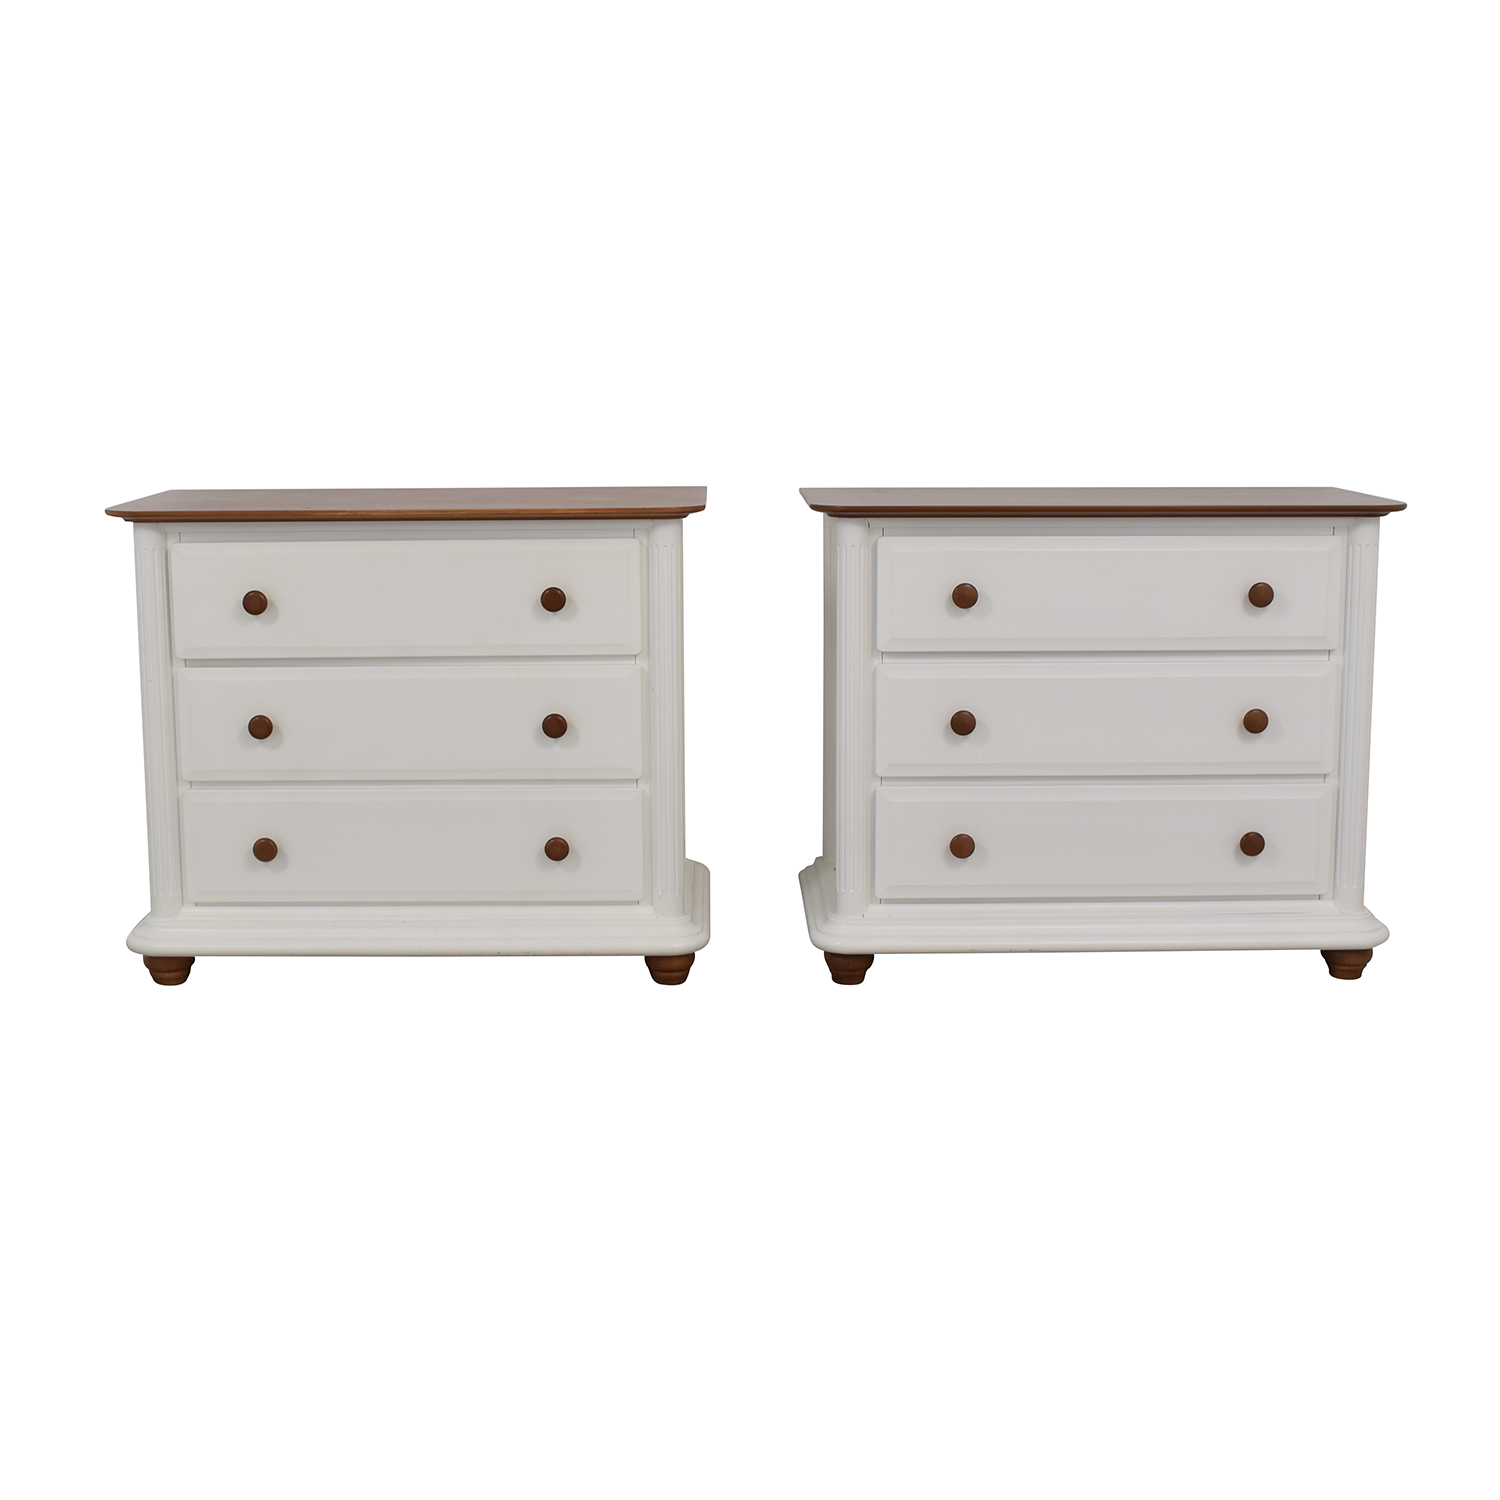 Romina Verona White Three-Drawer Dressers Romina